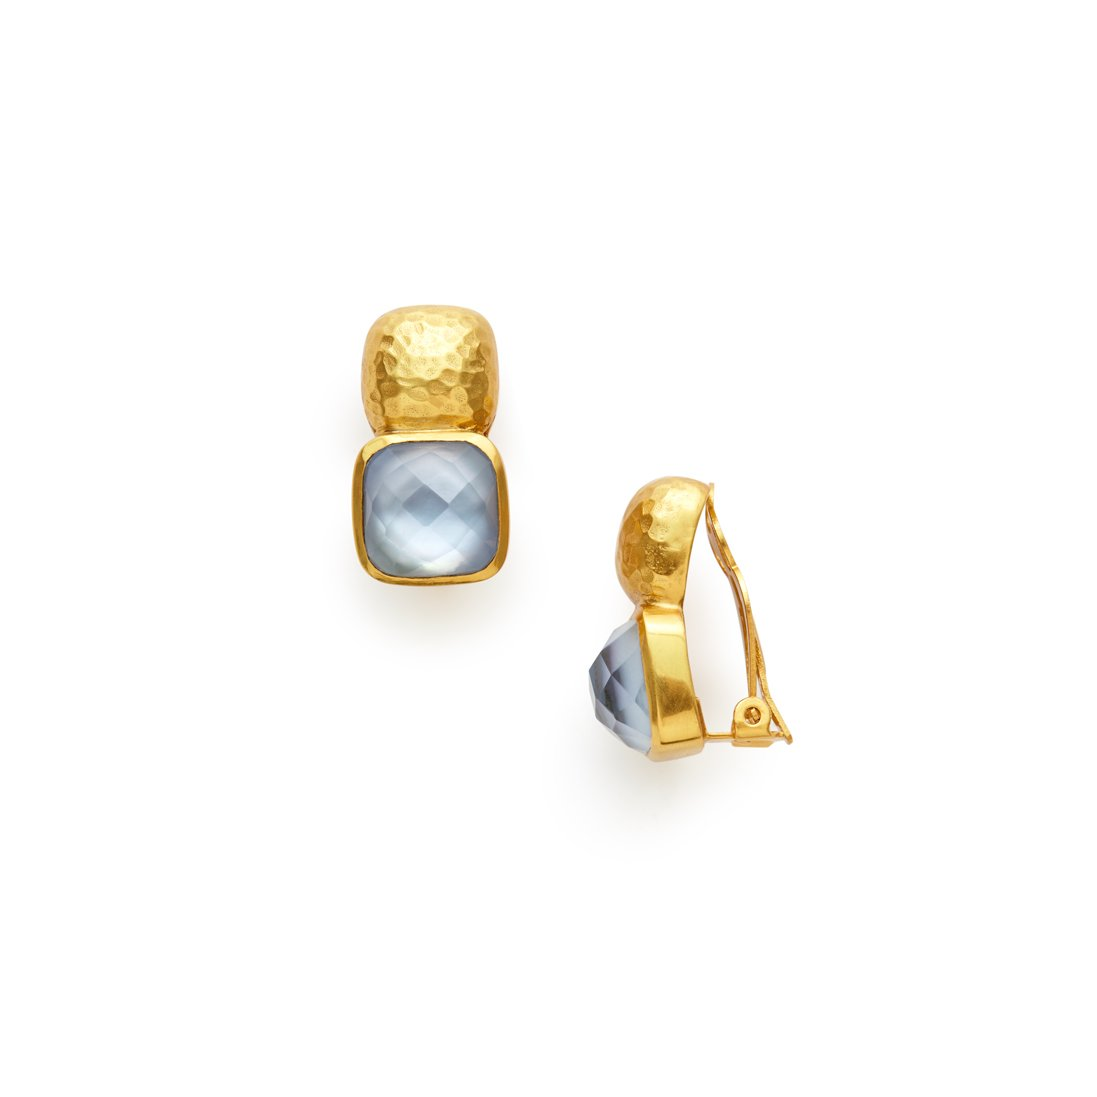 Catalina Earring with Iridescent Chalcedony